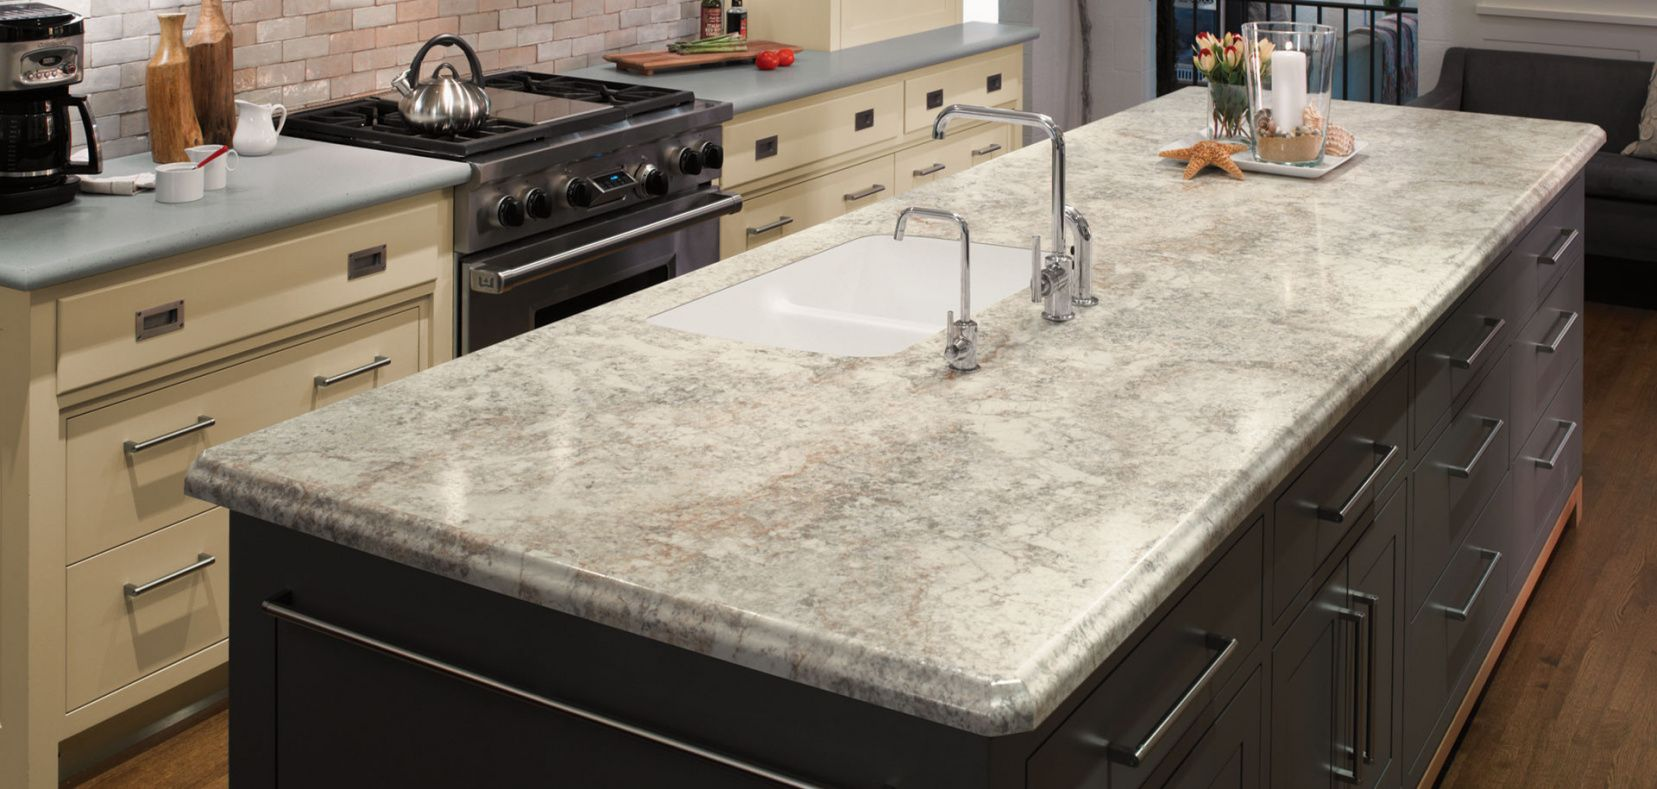 70 Removing Scratches From Granite Countertops Small Kitchen Island Ideas With Seating Check More